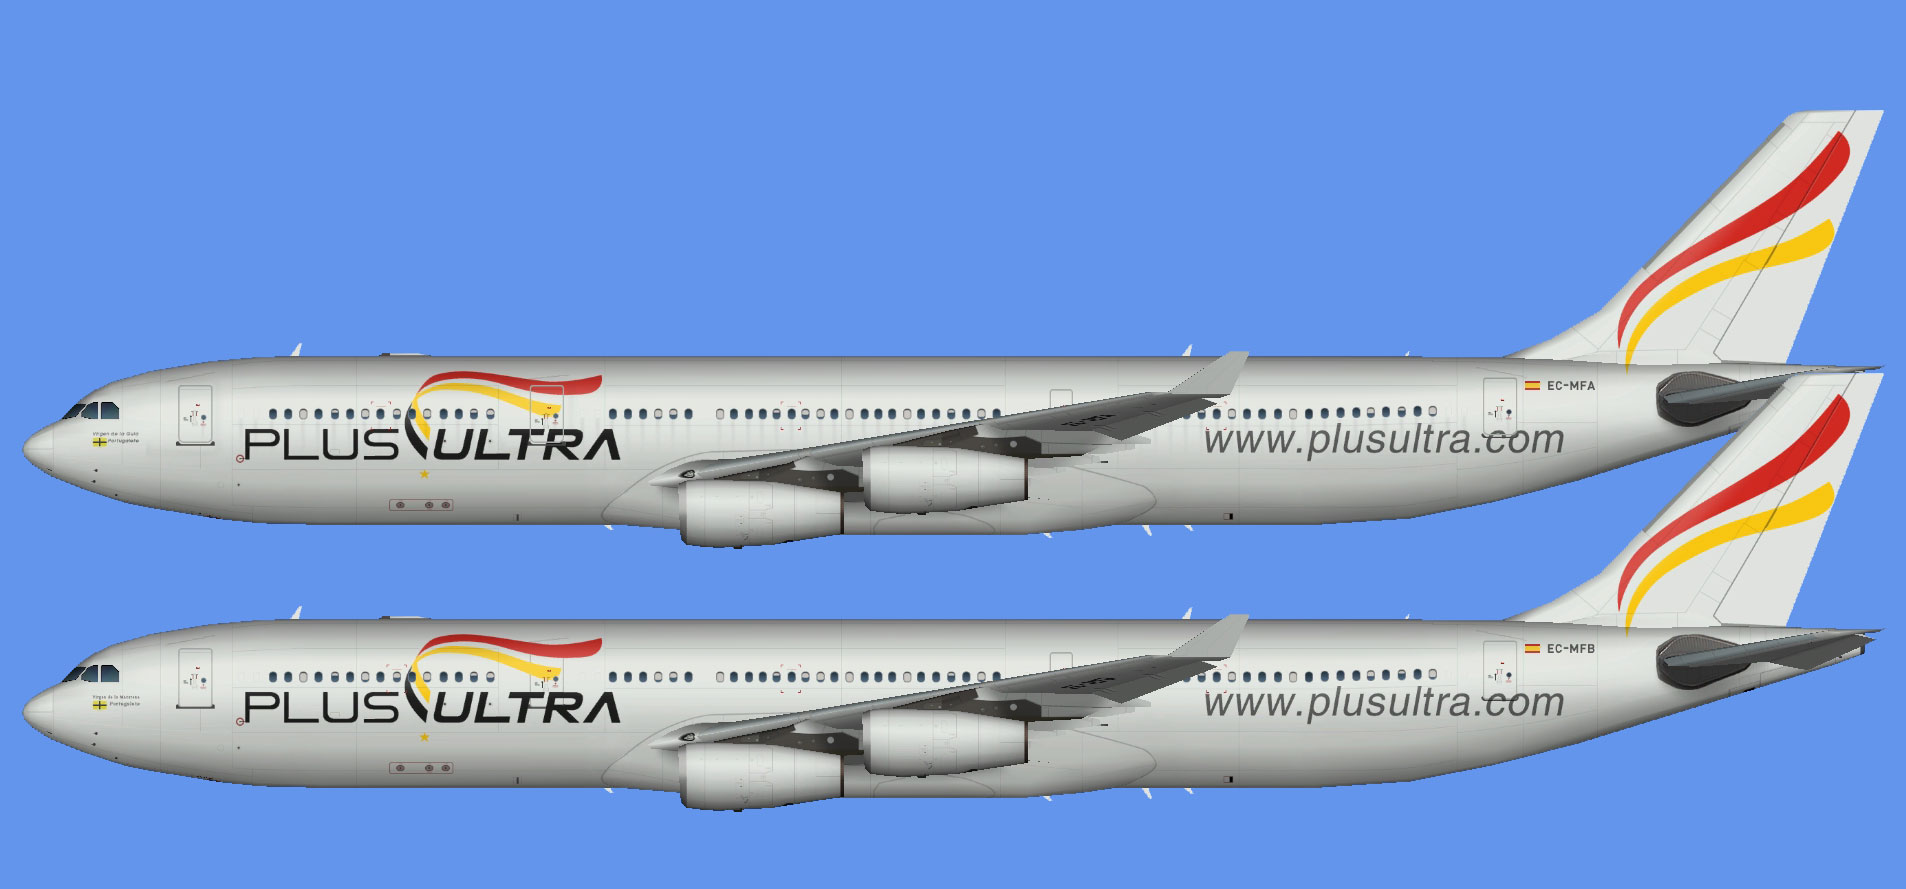 Plus Ultra A340 fleet (TFS)